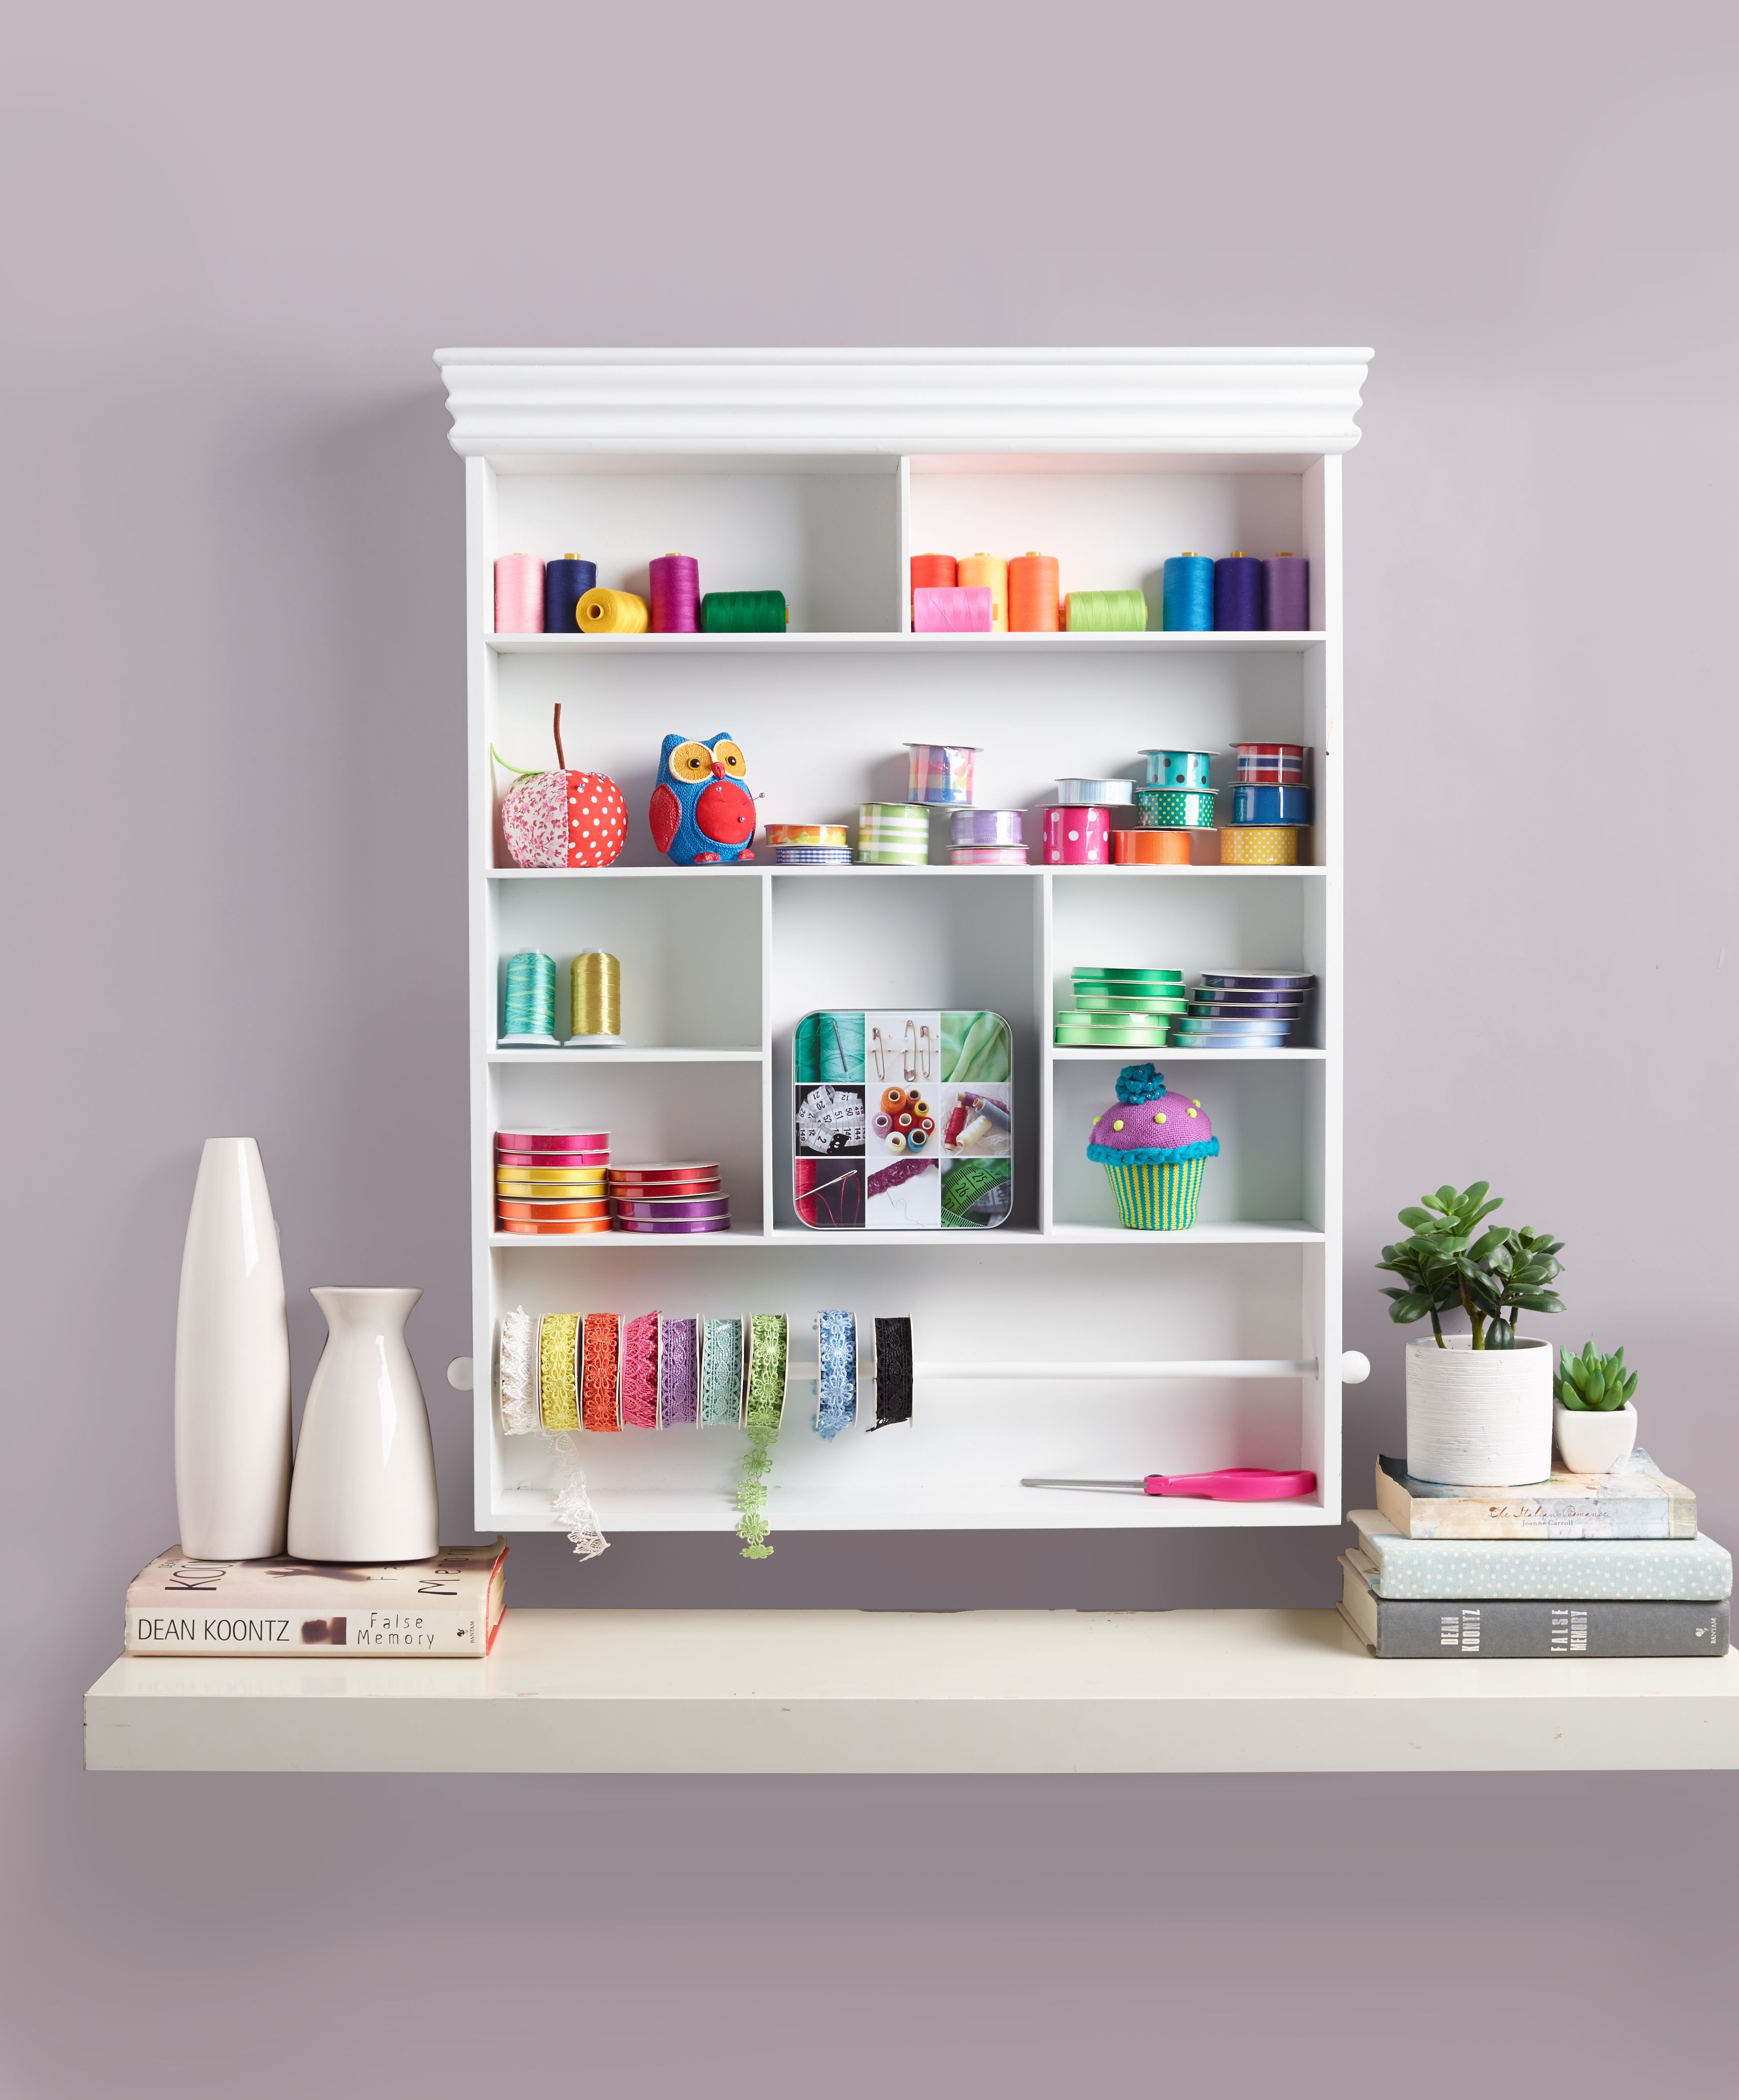 Organised Bedroom Organise Your Bits Pieces With The Semco Deluxe Trim Centre A